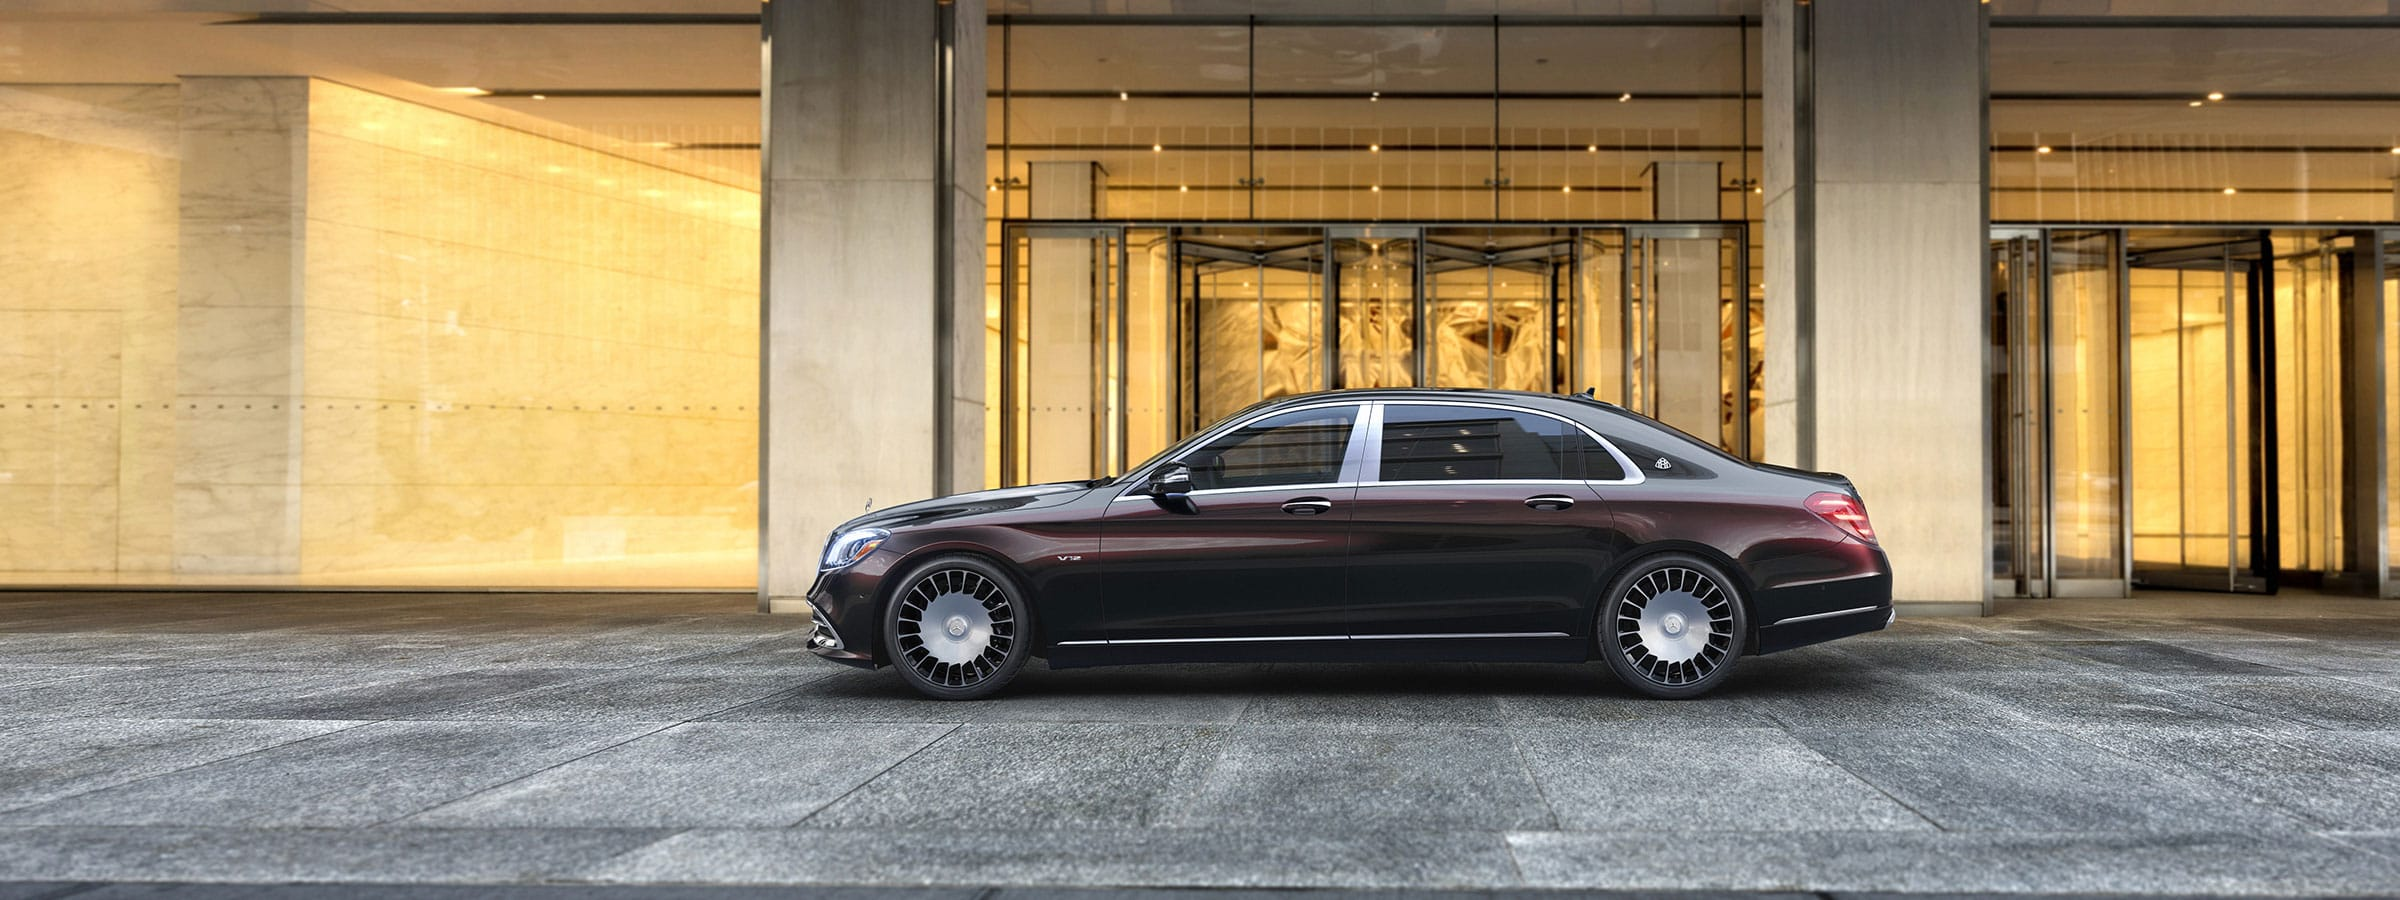 2019 Mercedes-Maybach